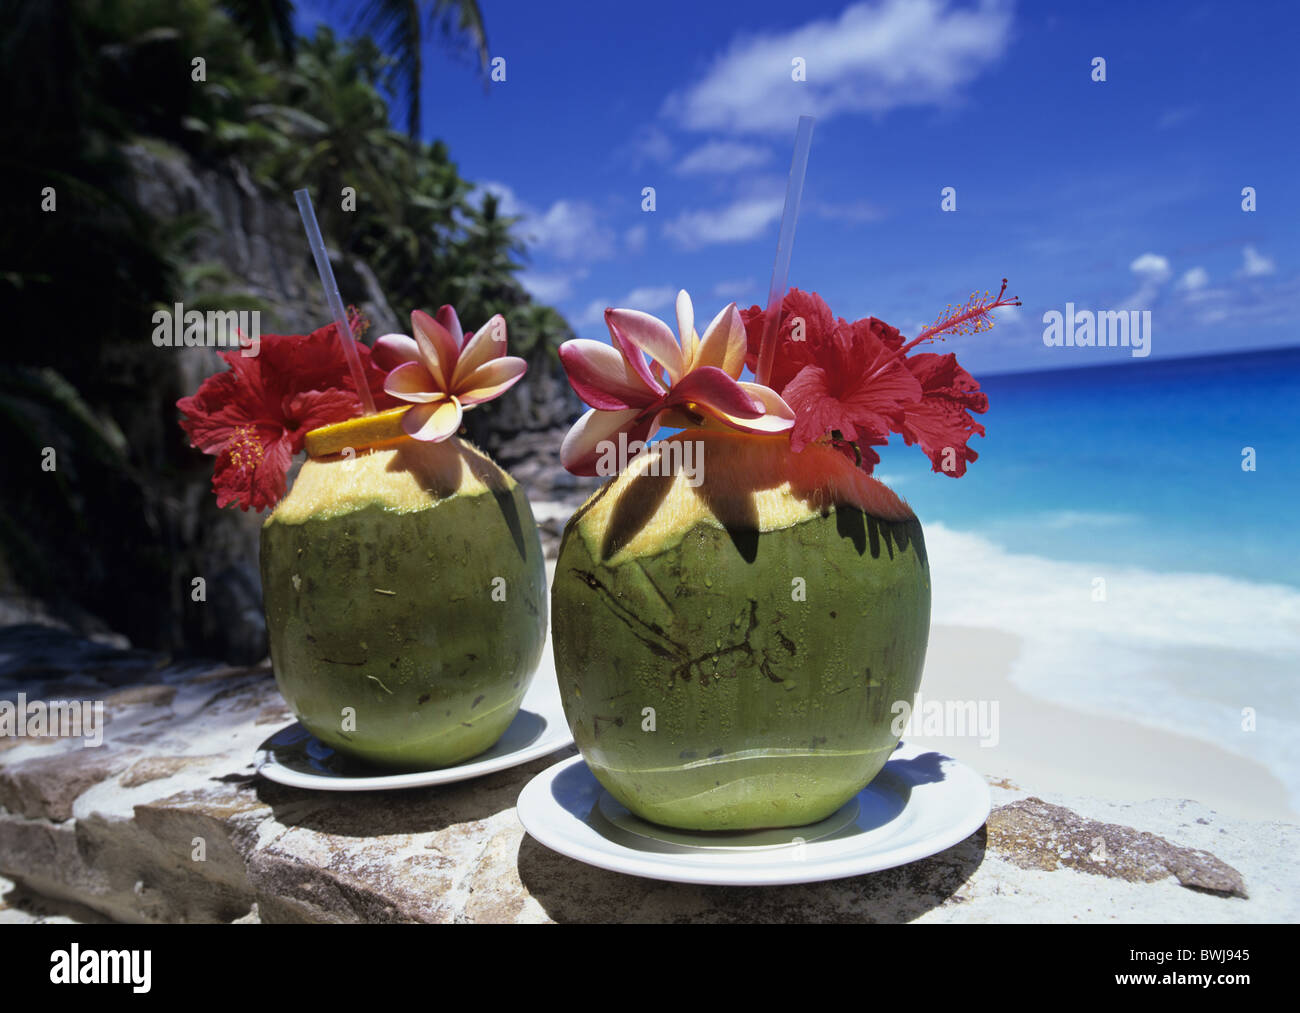 Two Coconut Drinks Blossoms Food Catering Palm Tree Beach Seashore Sand Seychelles Indian